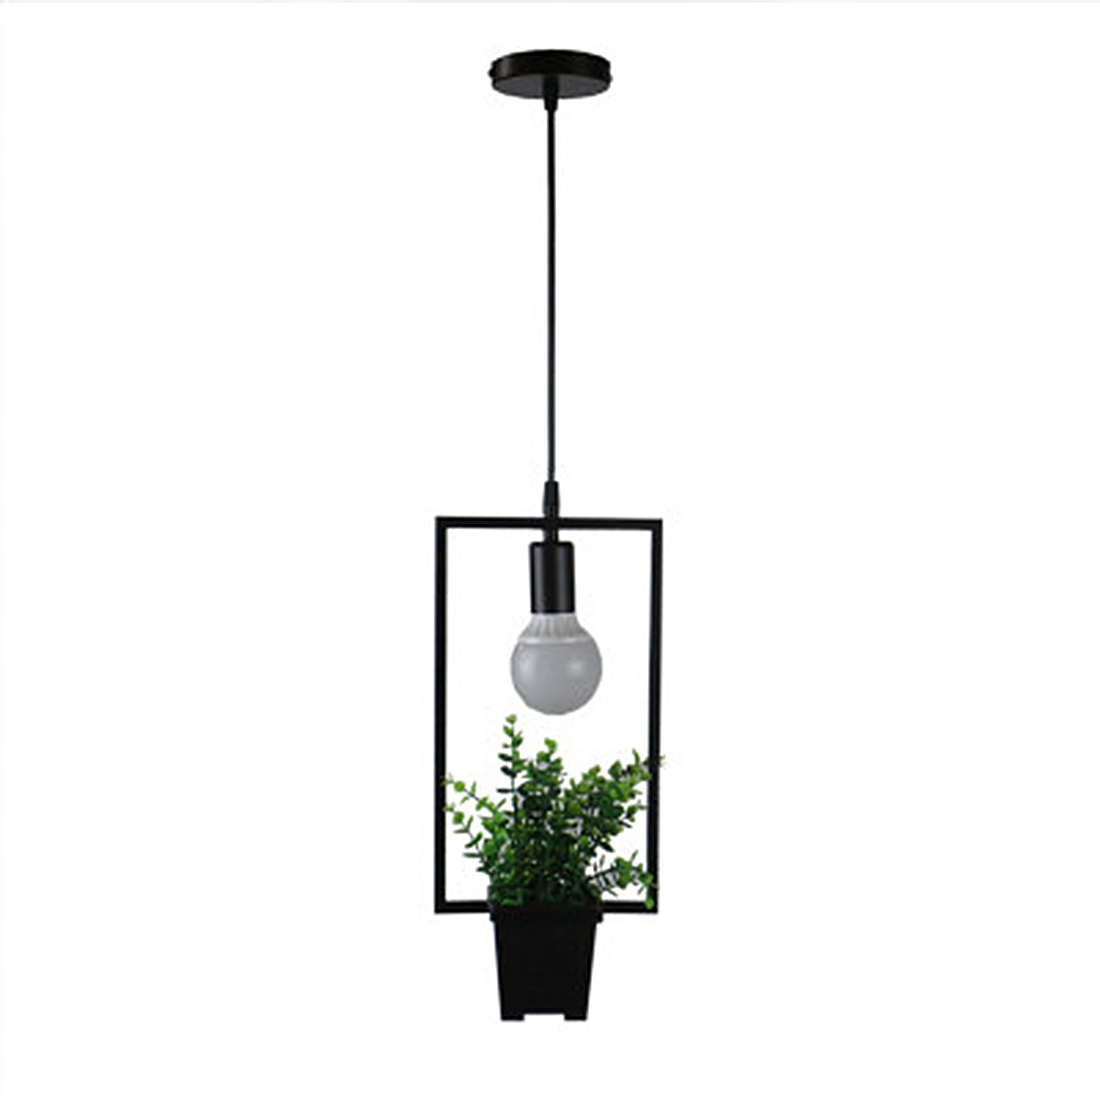 Pendant Light Oblong Green Plant Hanging Lamp Retro Industrial Style Creative Personalit Clothing Shop RestaurantPendant Light Oblong Green Plant Hanging Lamp Retro Industrial Style Creative Personalit Clothing Shop Restaurant